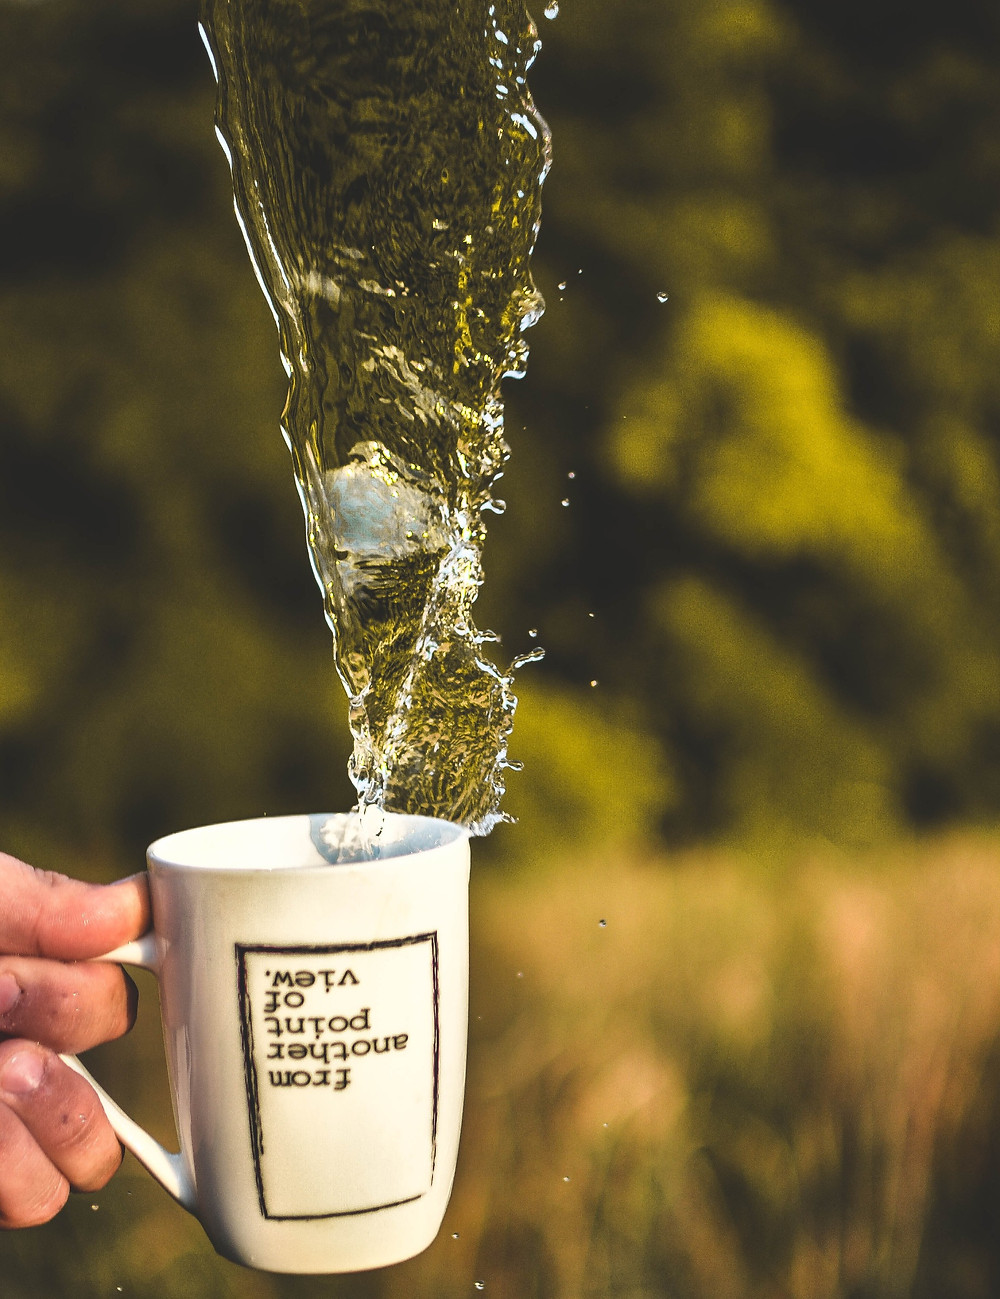 from another point of view on a written up side down on a coffee mug with water flowing out of it